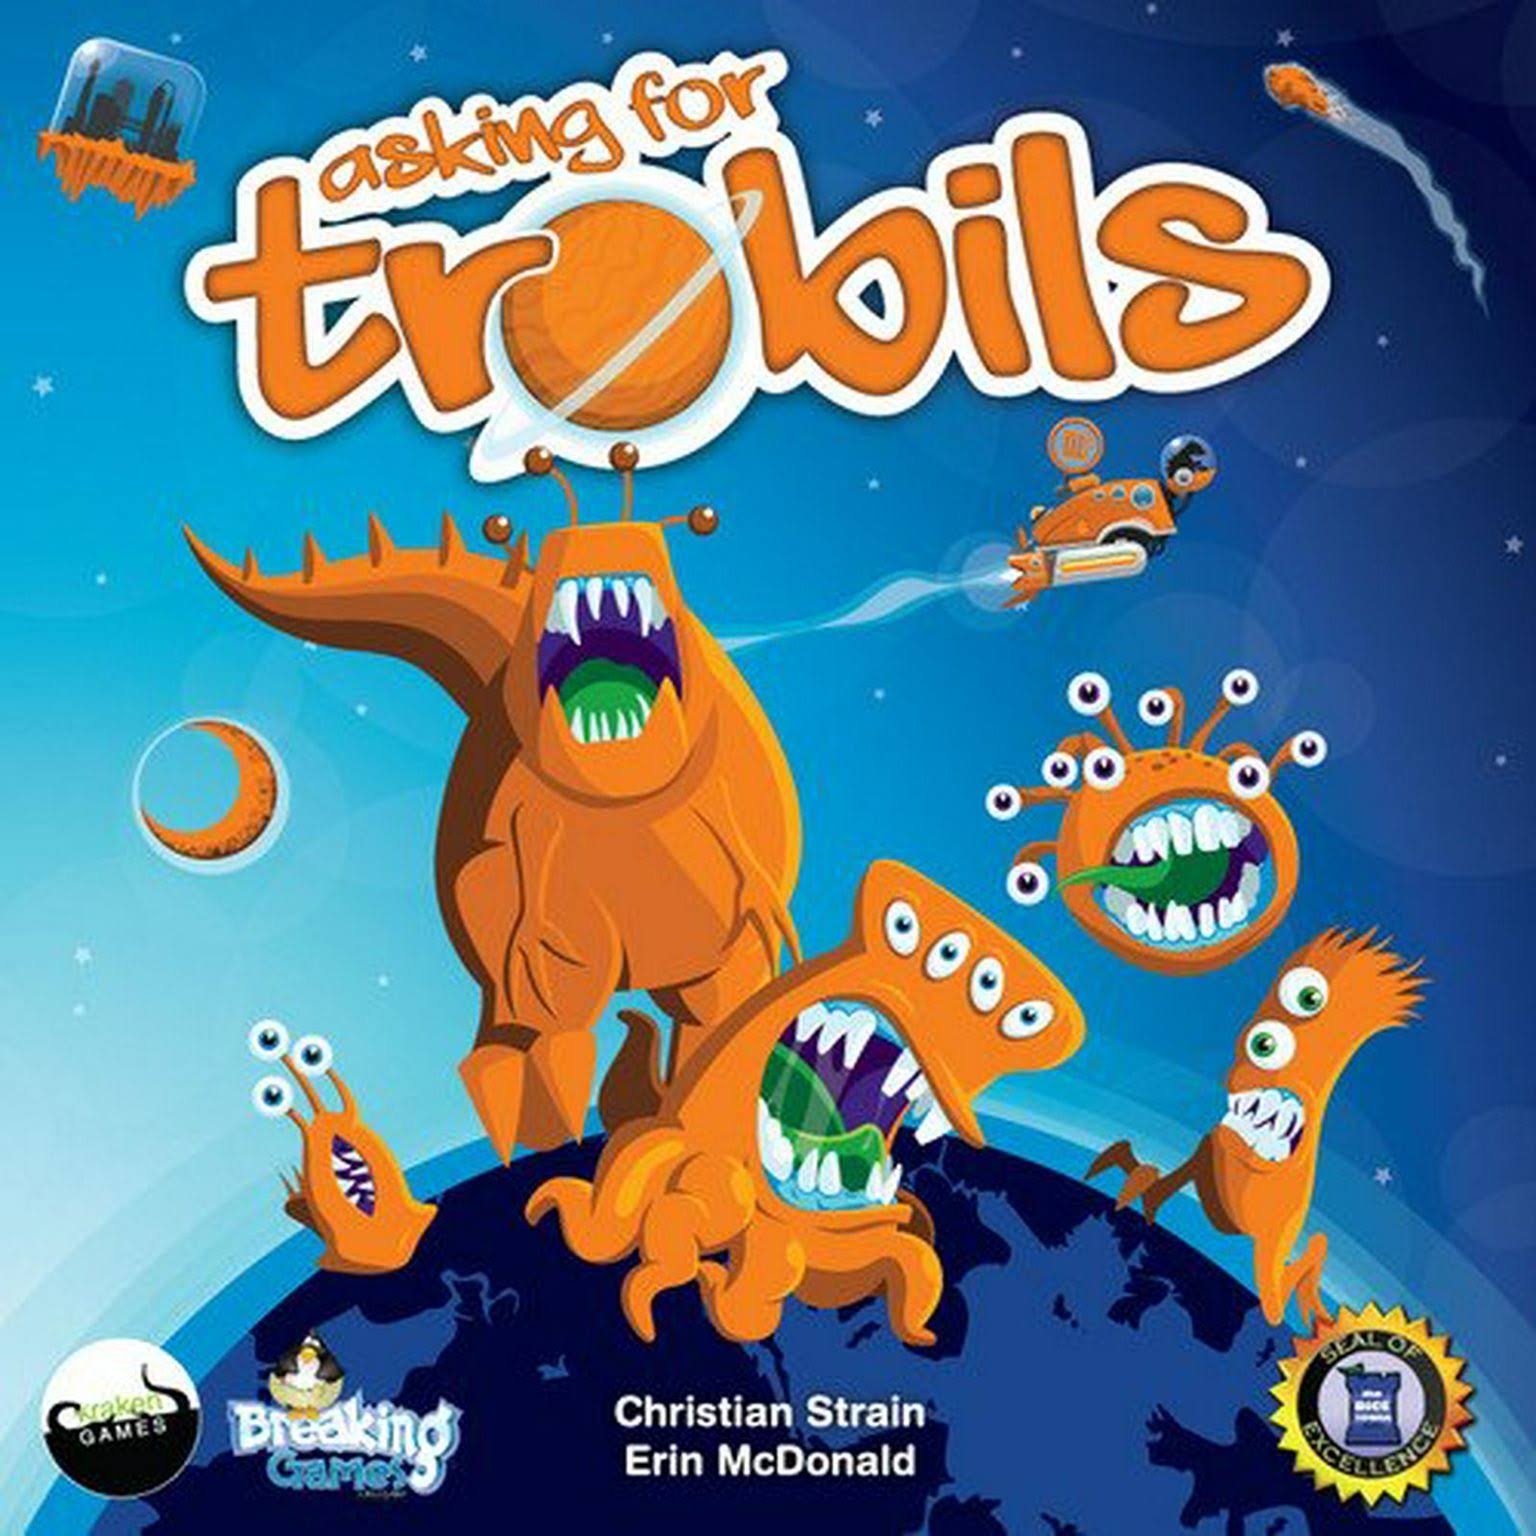 Breaking Games Asking for Trobils Board Game